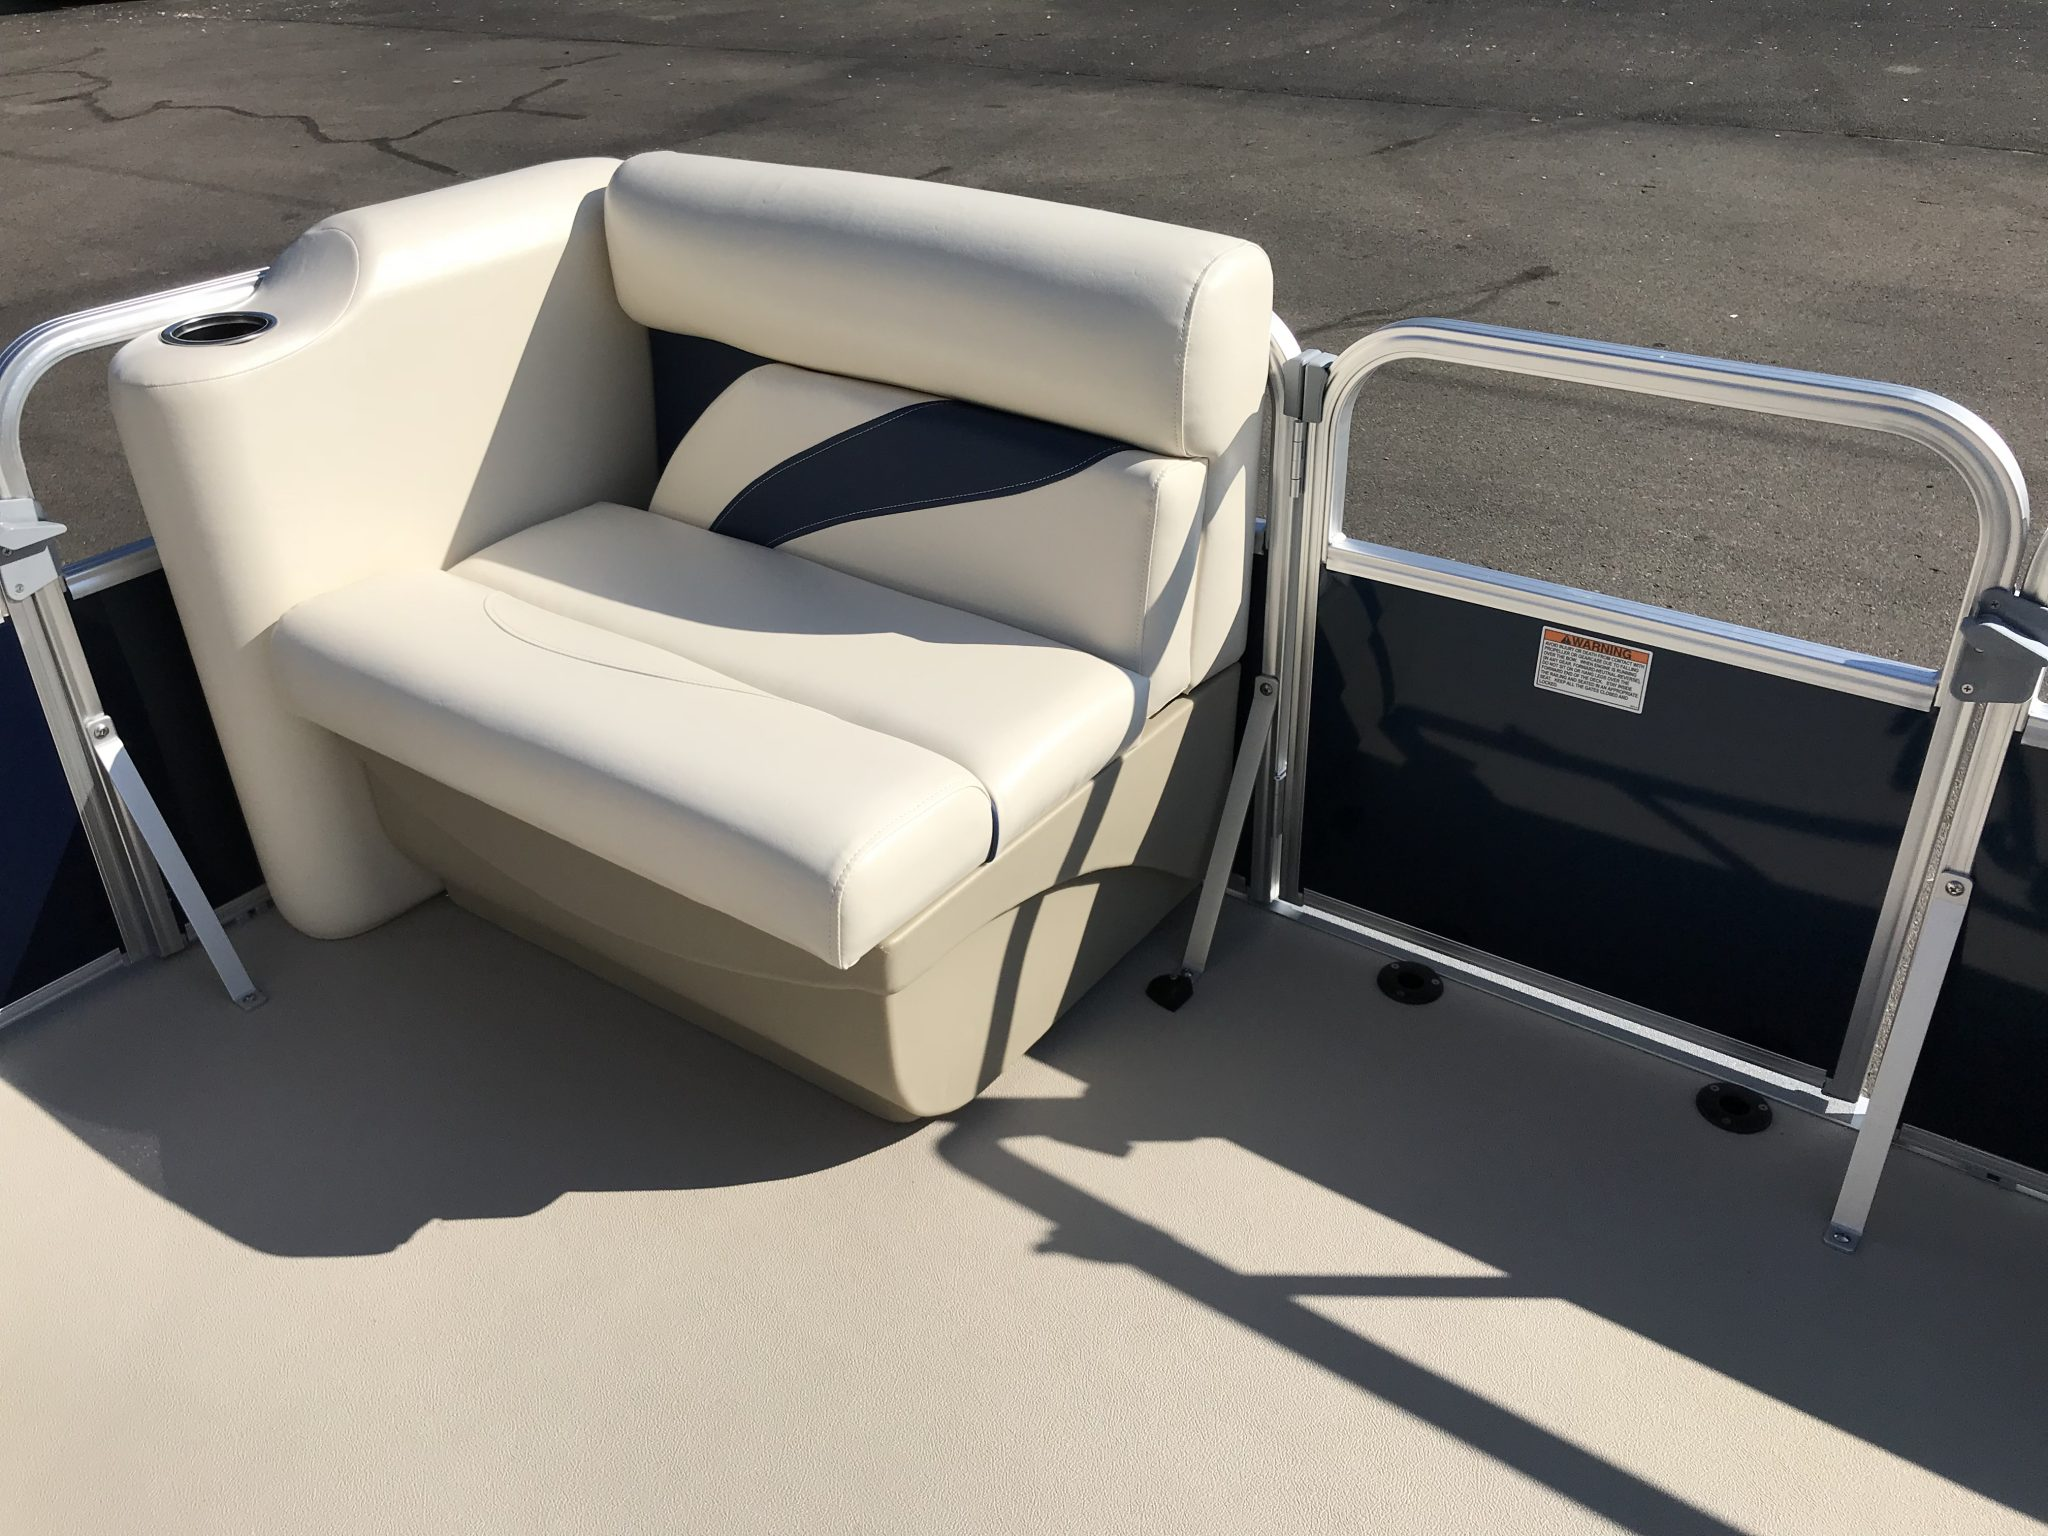 2019 SunChaser 816 Cruise Interior Bow Seating 2